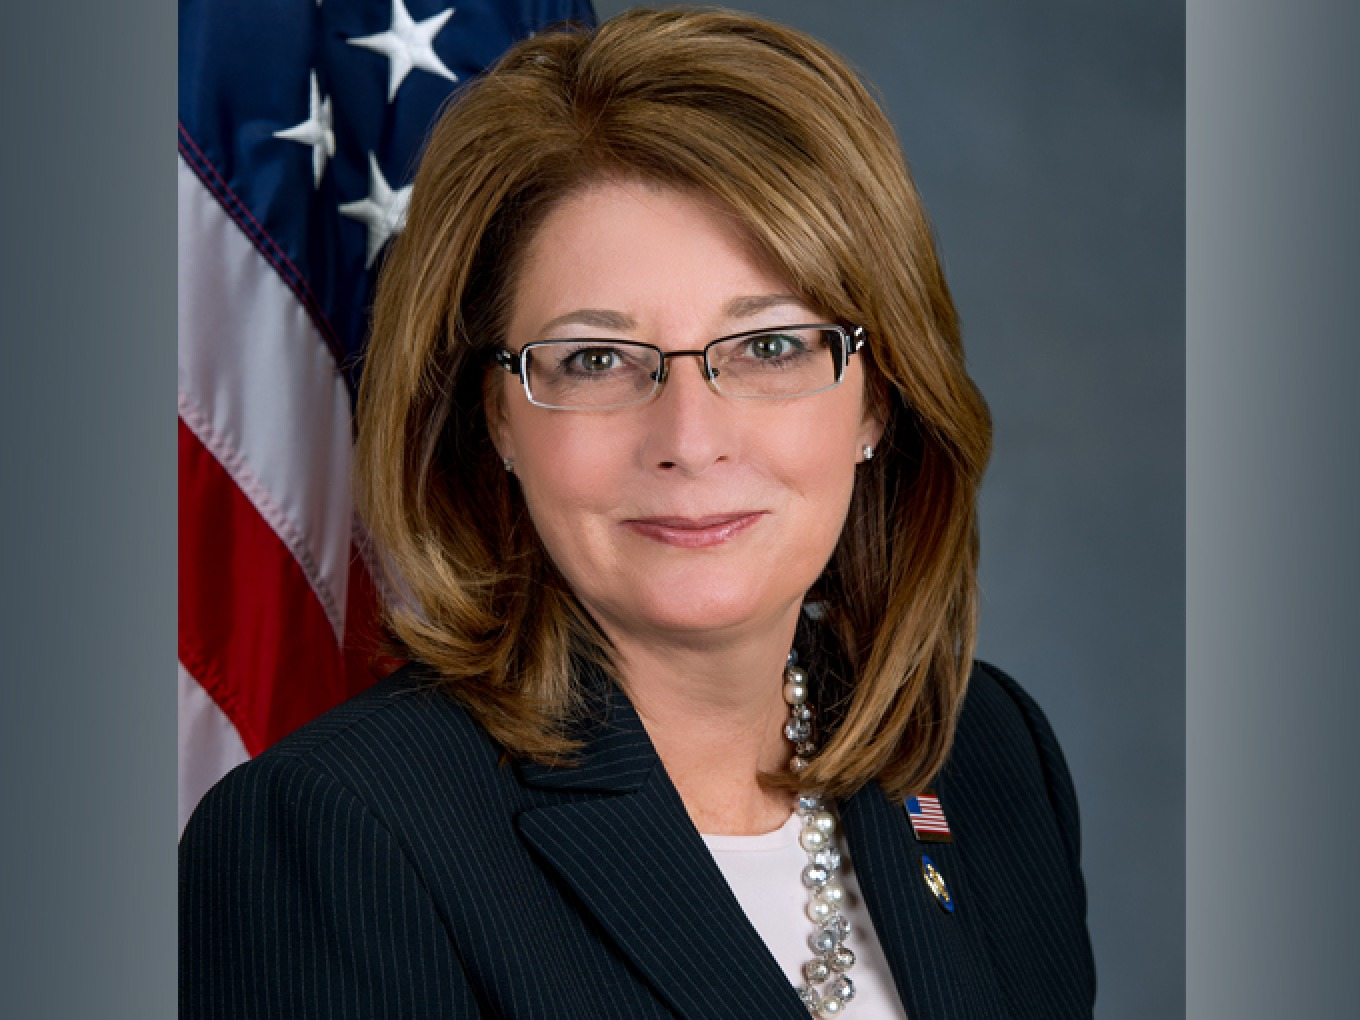 NY State Sen. Pam Helming